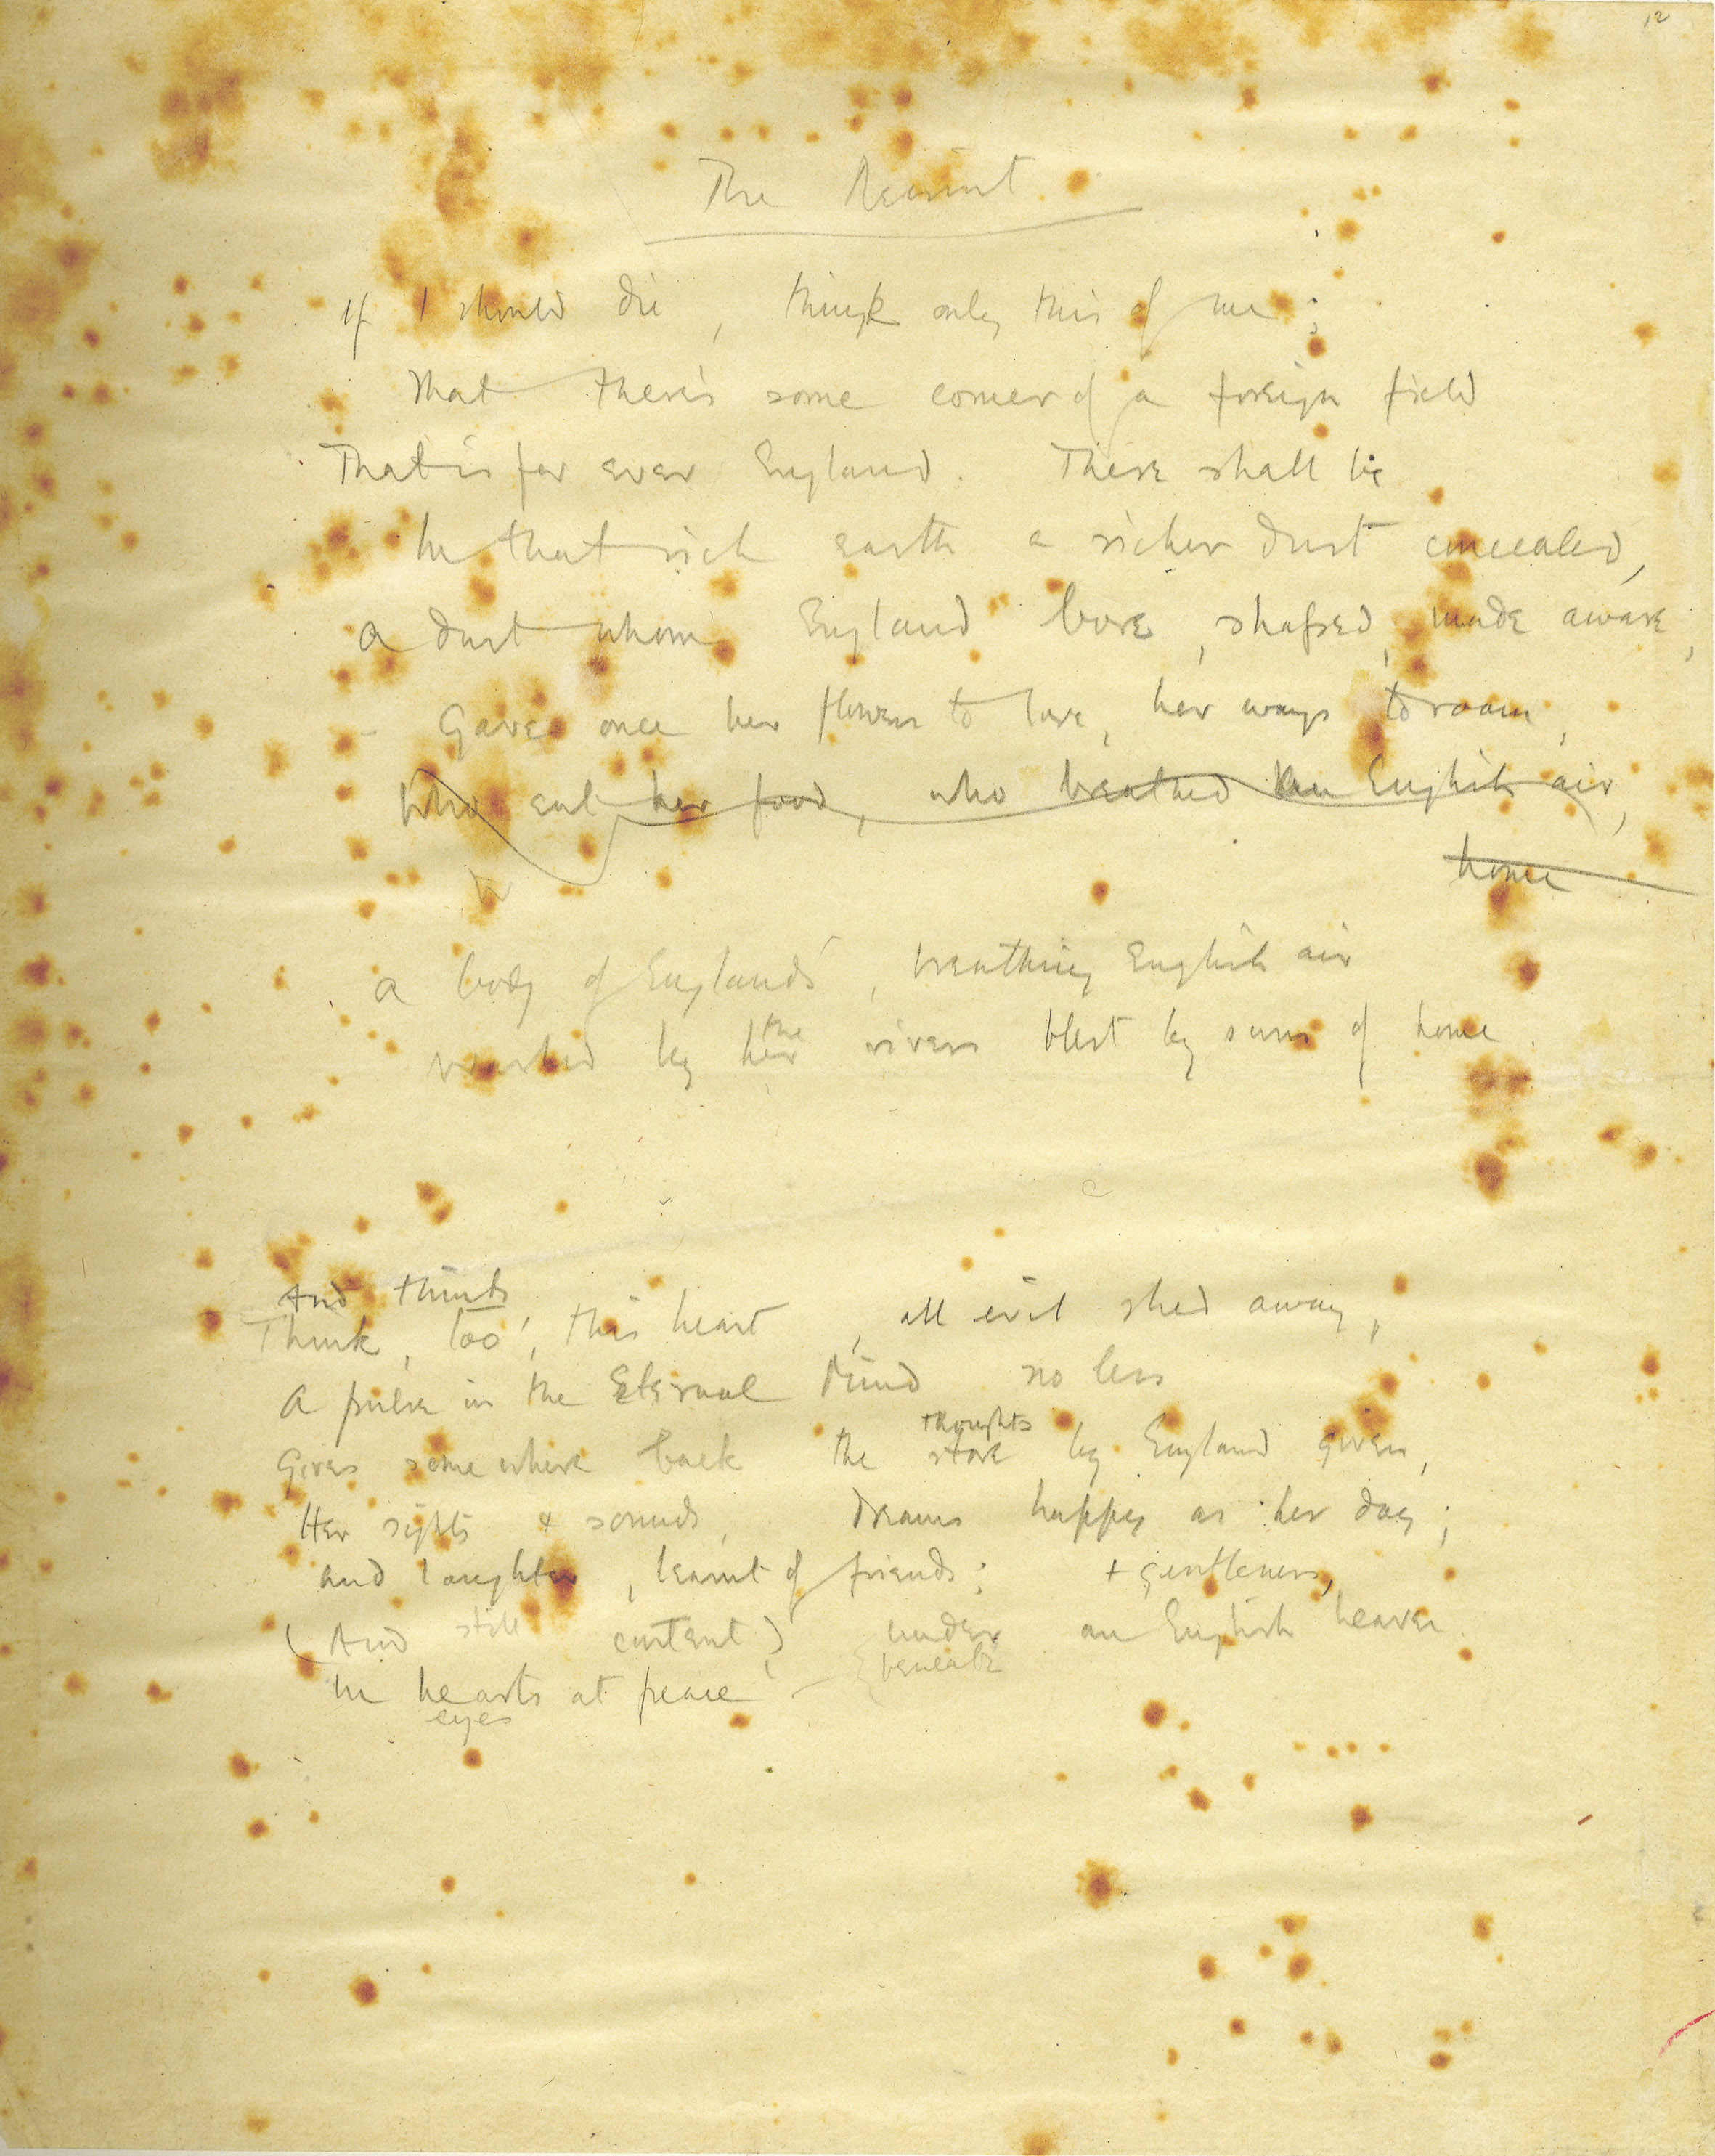 An early draft of Rupert Brooke's poem 'The Soldier', entitled 'The Recruit' (RCB/V/1/16)